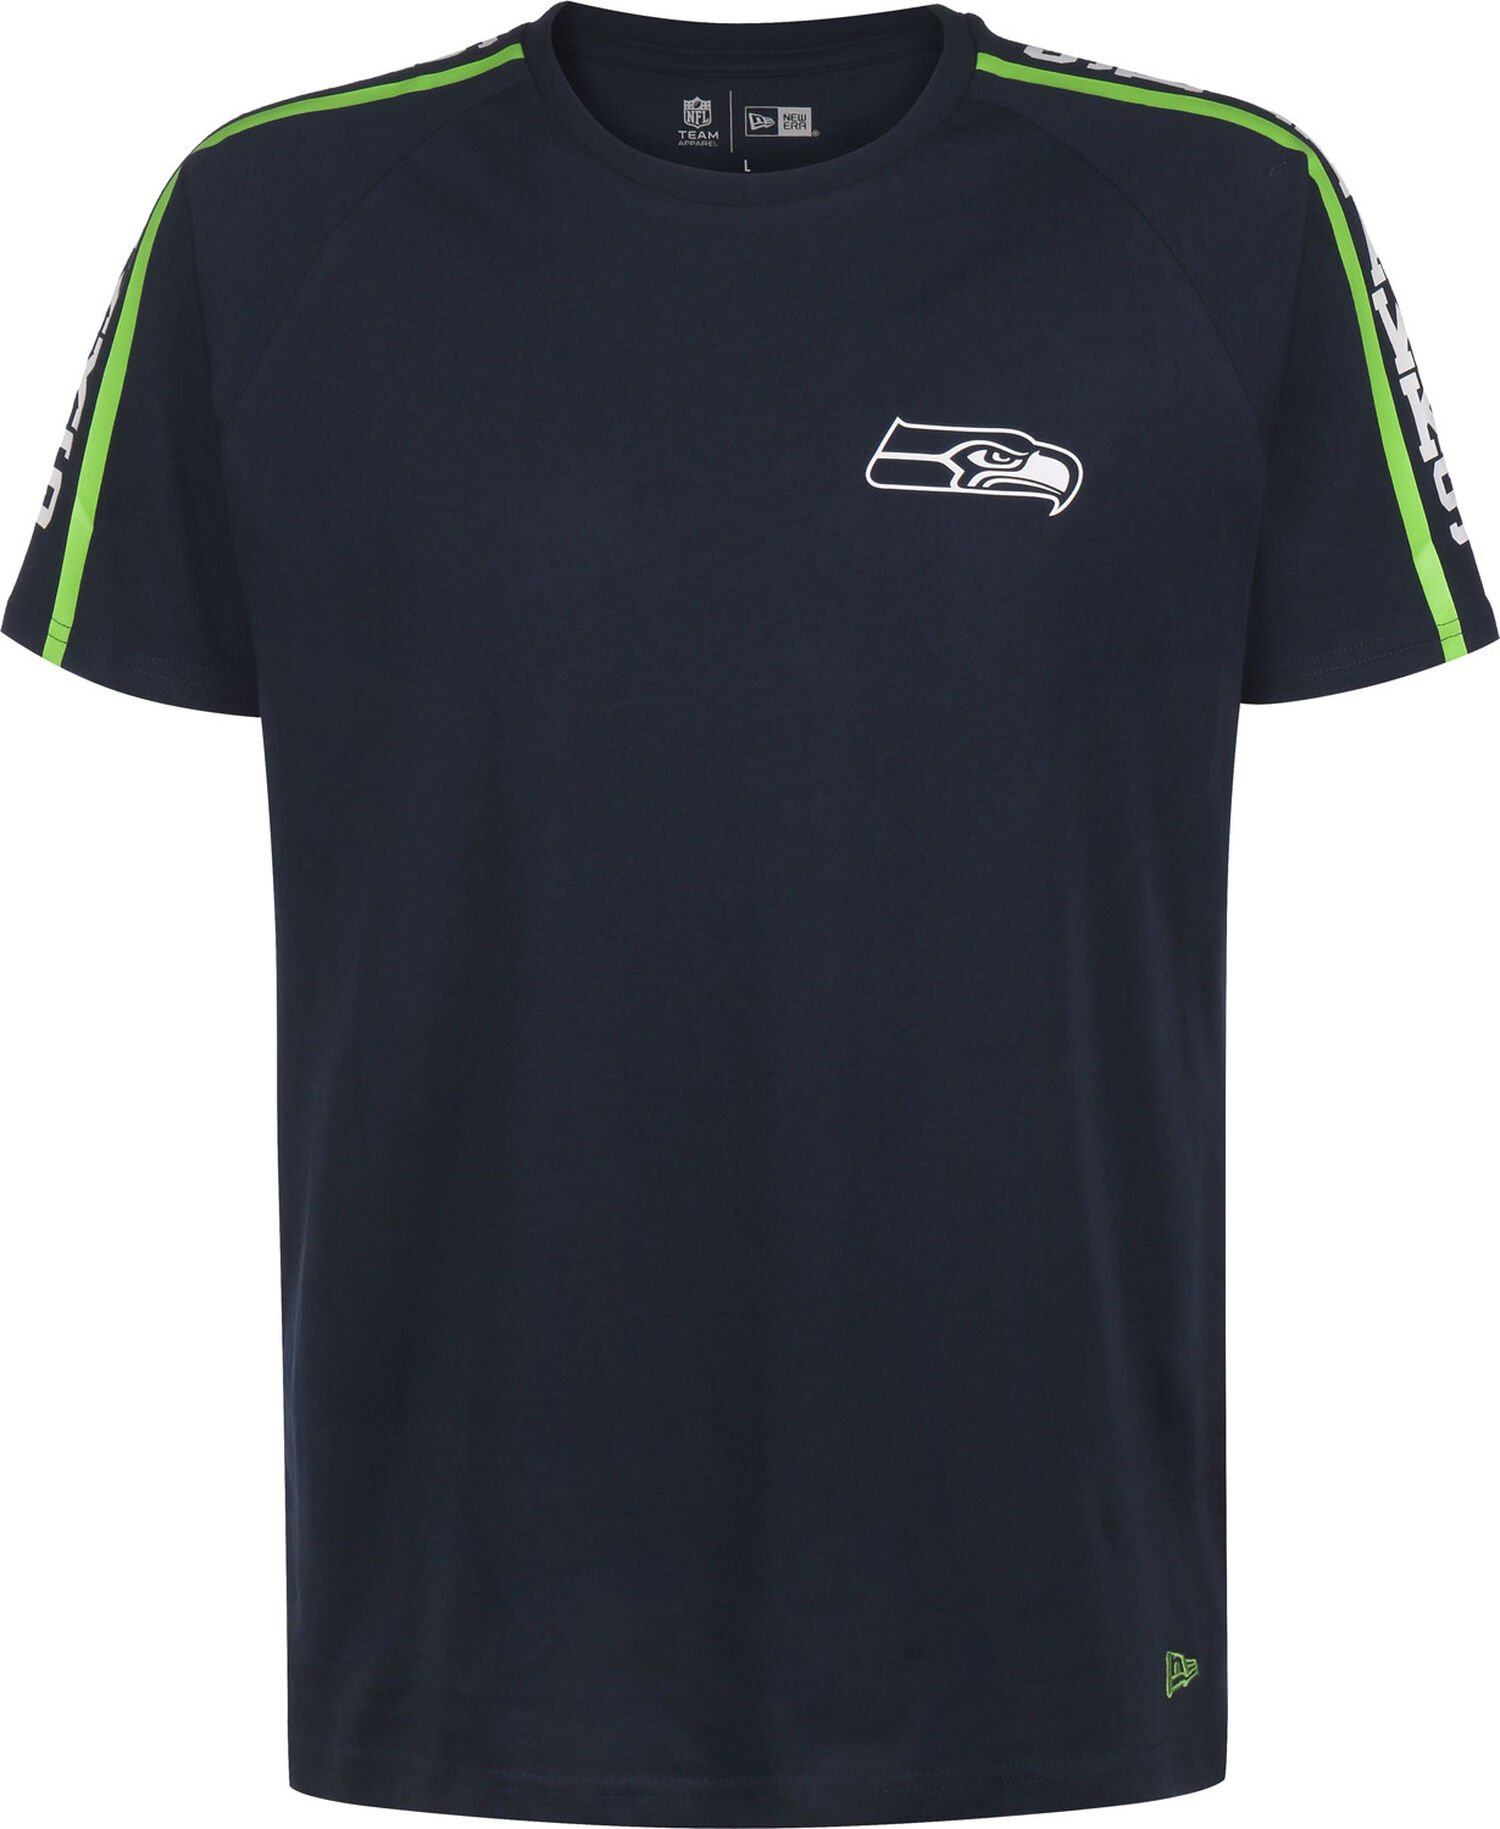 NFL Raglan Shoulder Print Seattle Seahawks